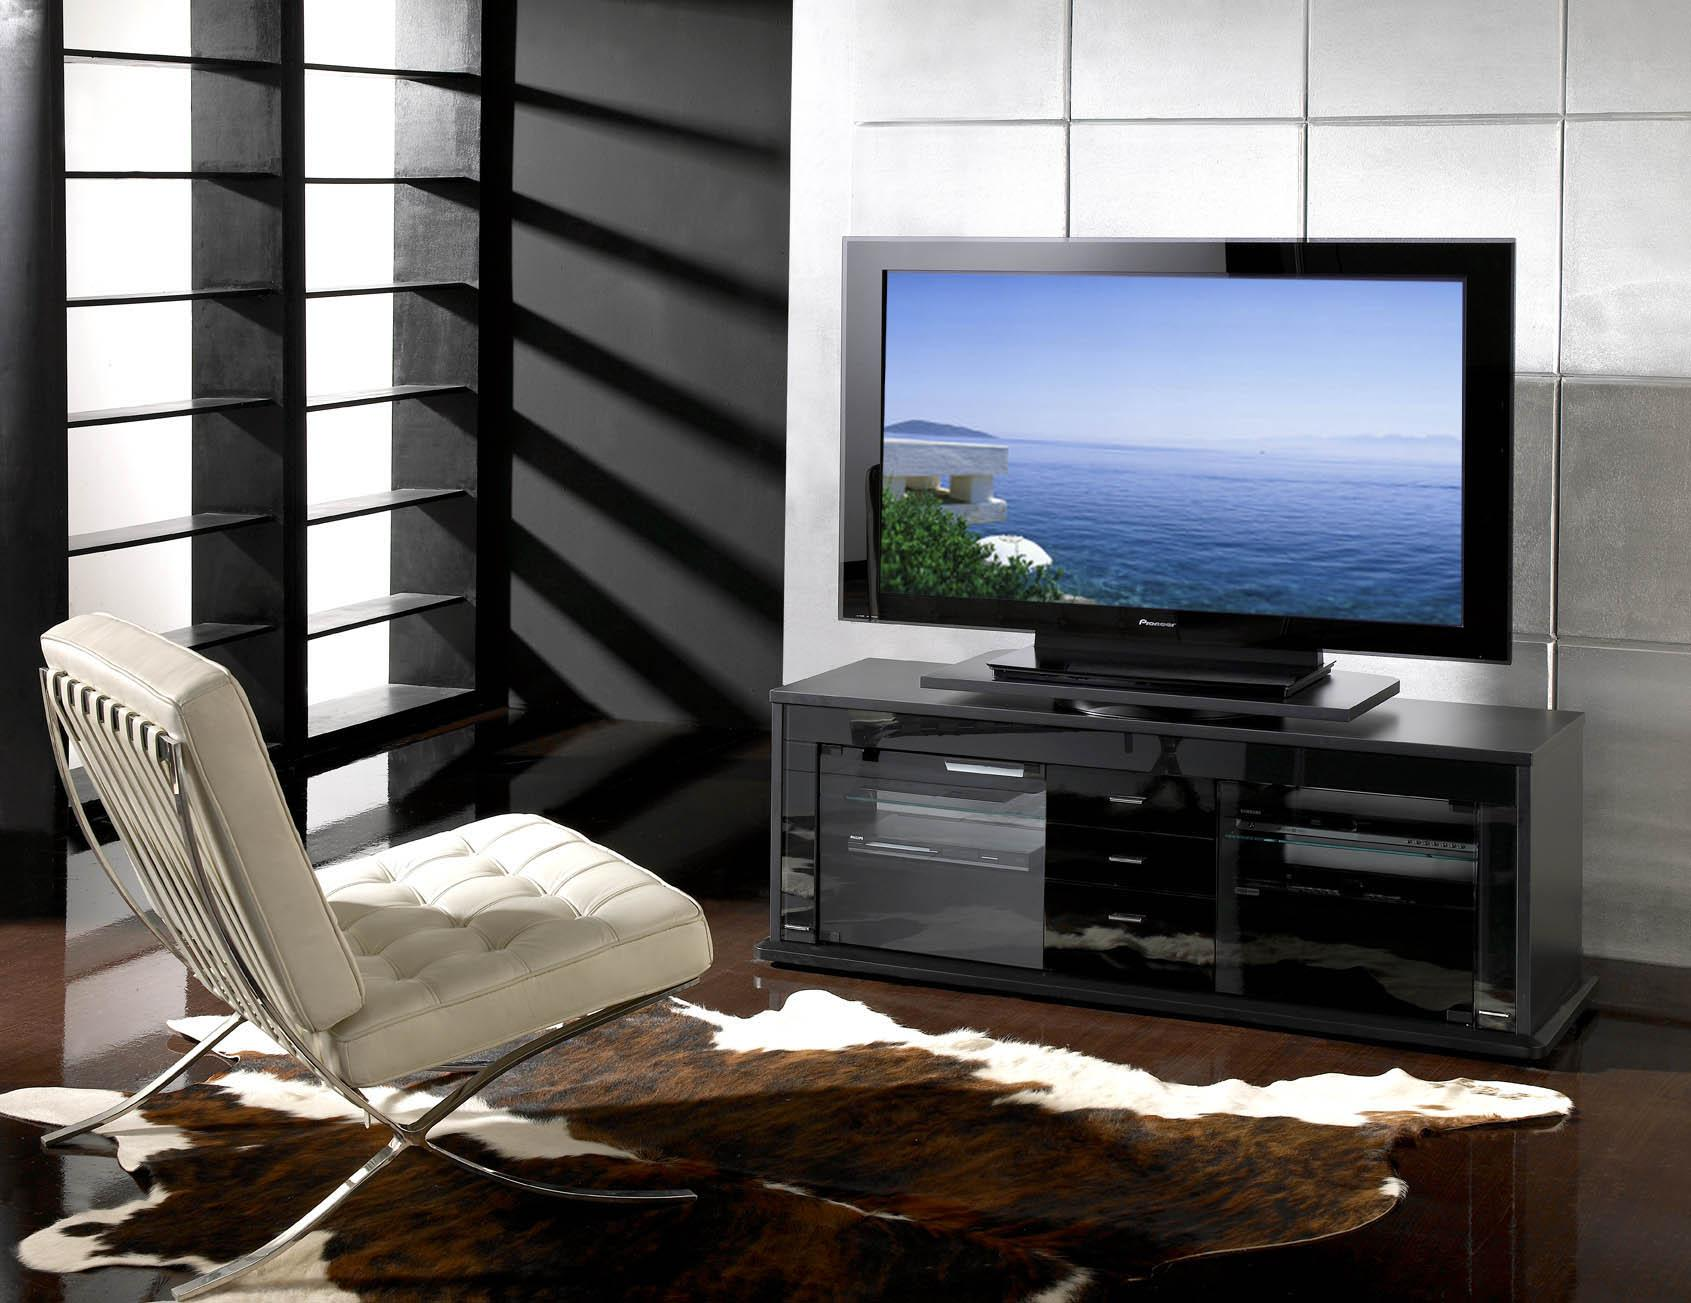 meubles tv pratiques et esth tiques meuble tv fonctionnel et design. Black Bedroom Furniture Sets. Home Design Ideas